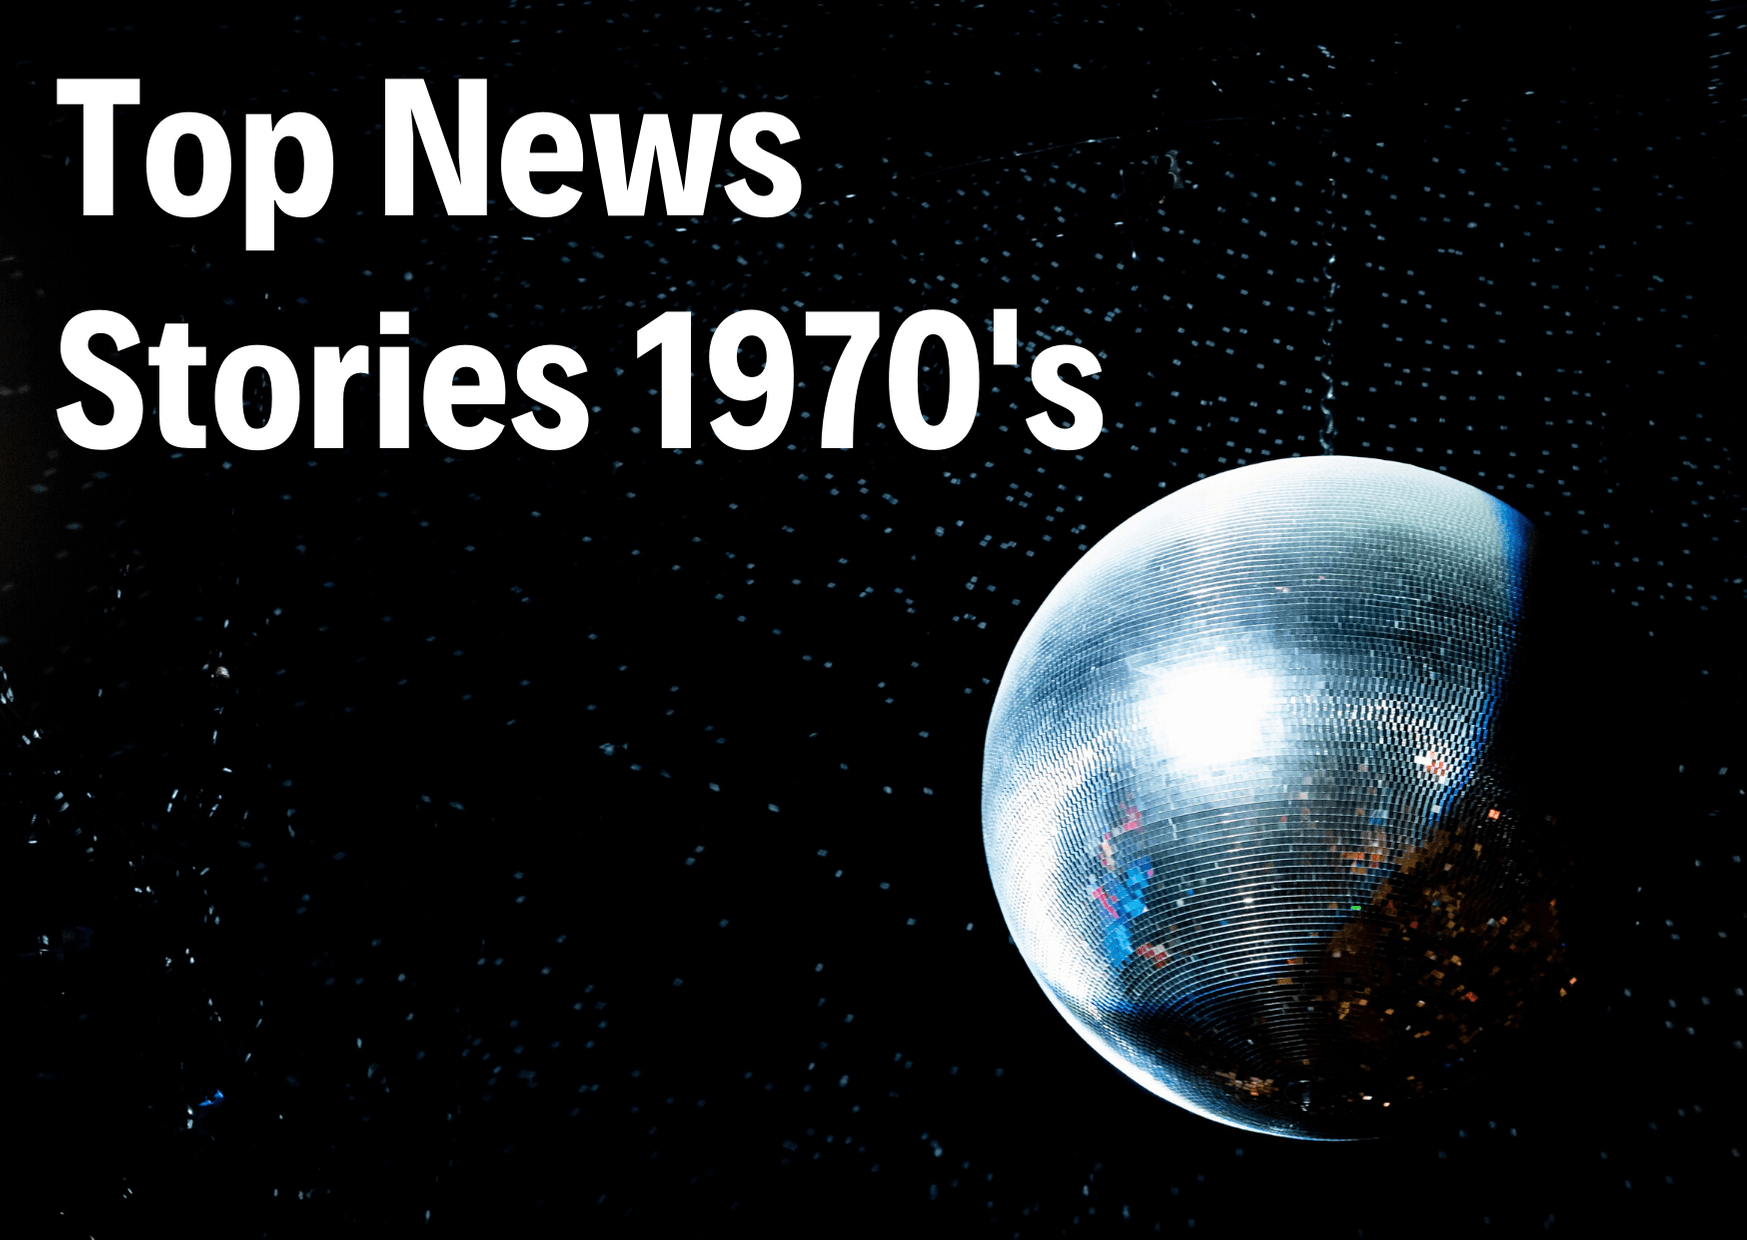 1970s News Opens in new window